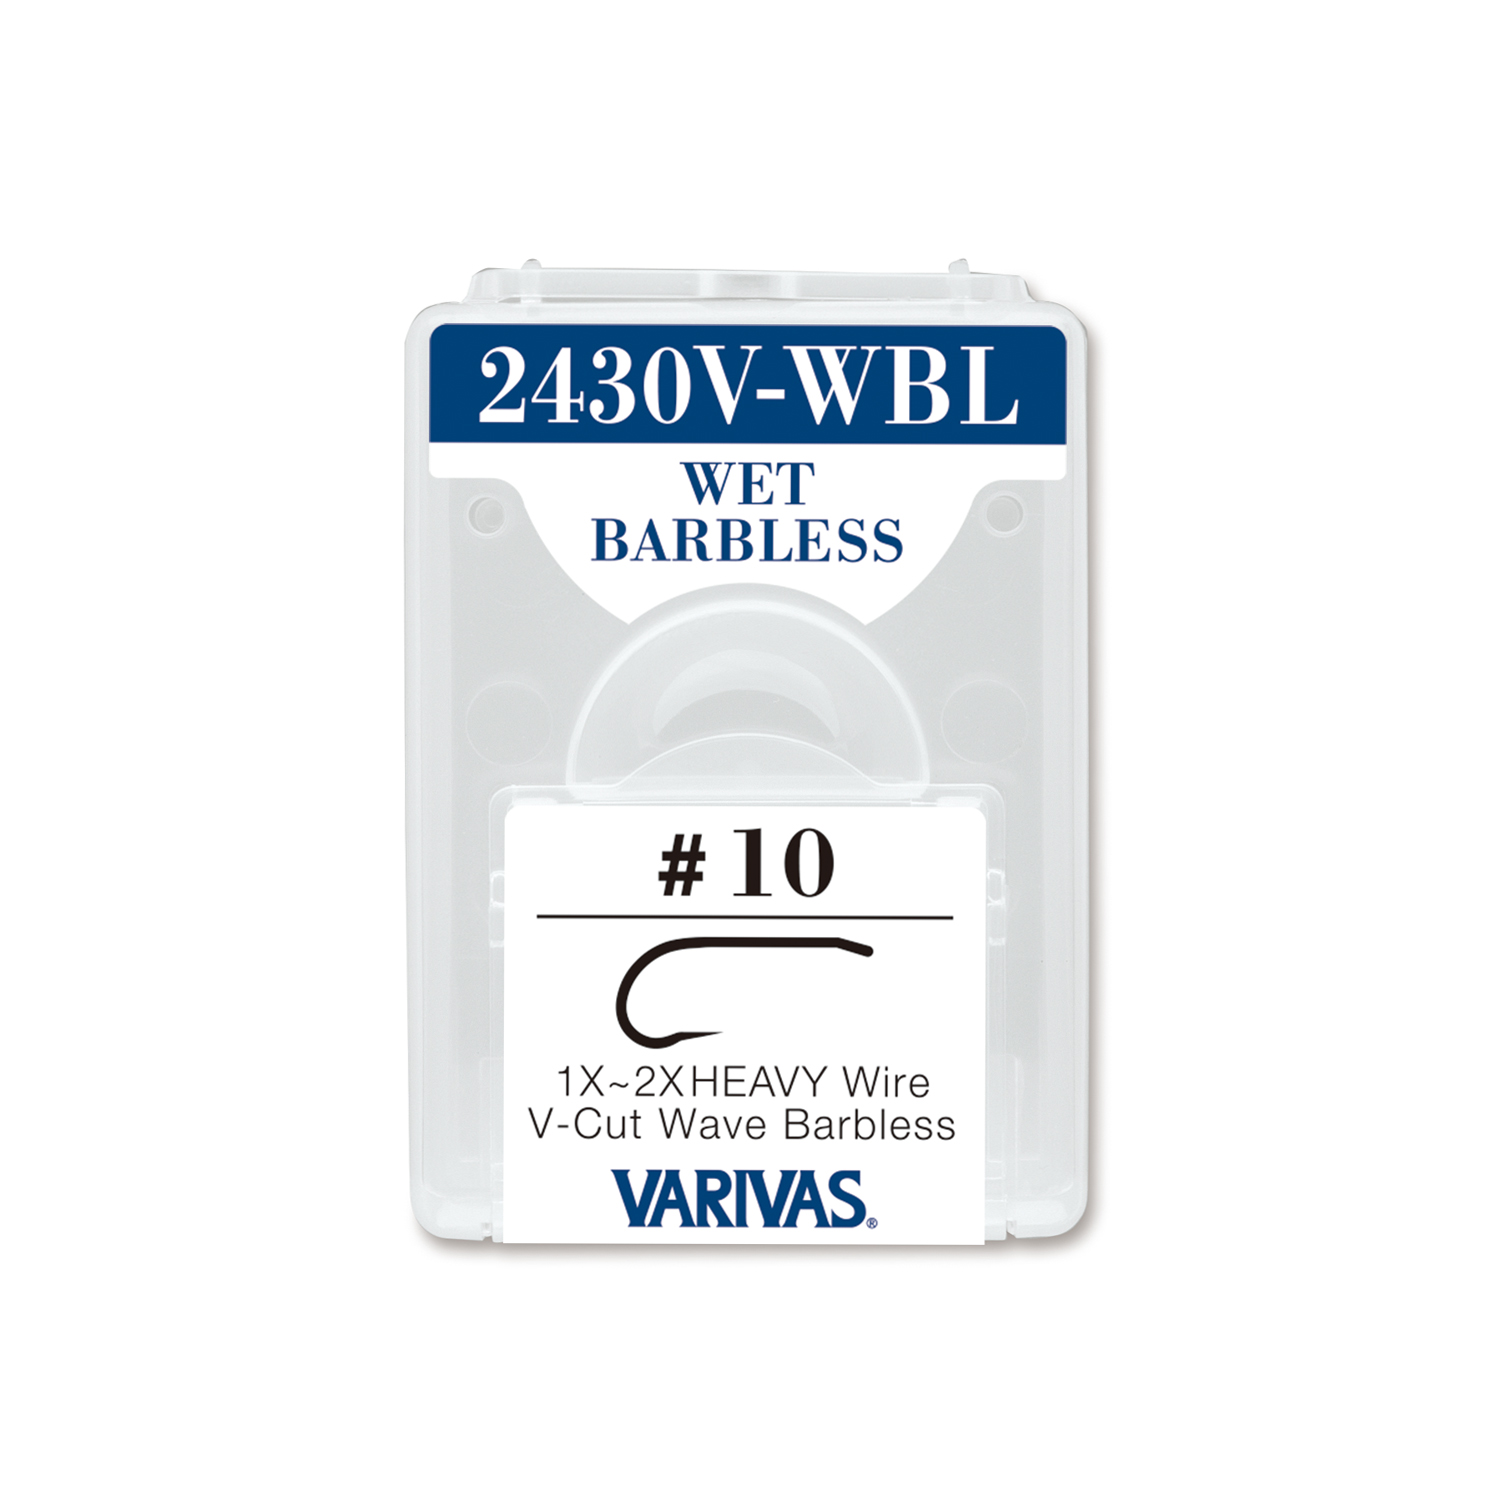 2430V-WBL WET BARBLESS1X〜2X Heavy Wire V-Cut Wave Barbless